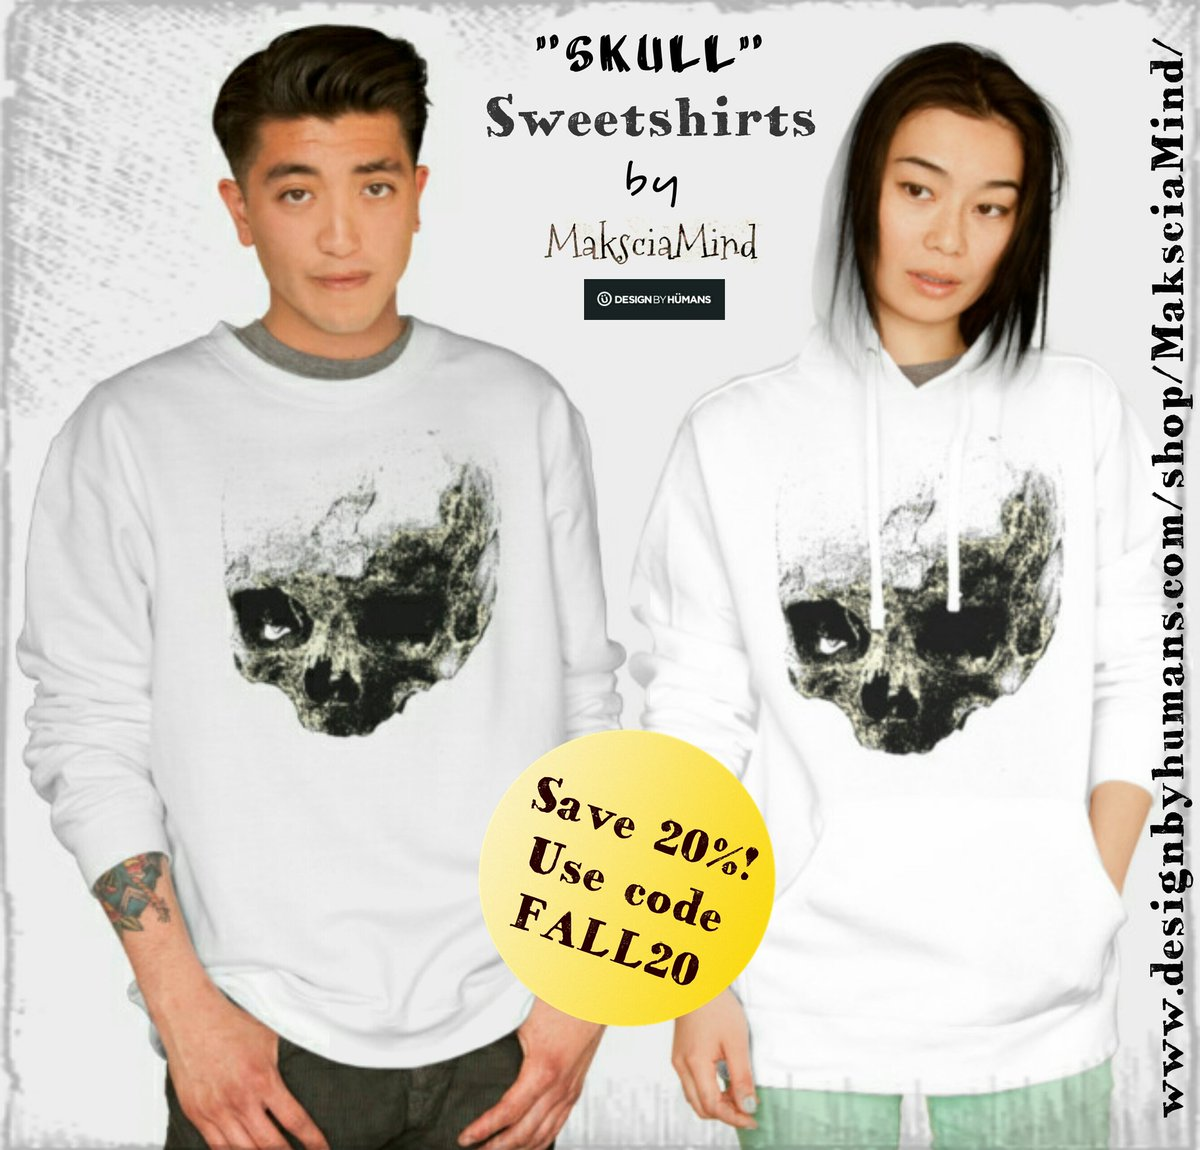 Save 20% on Skull Sweatshirts -》  https://www. designbyhumans.com/shop/pullover- hoodie/out-of-the-dark/648700/ &nbsp; …   #maksciamind @DesignByHumans  #crewneck #pullover #hoodies #men #woman #horror<br>http://pic.twitter.com/Ek15ubcHj1